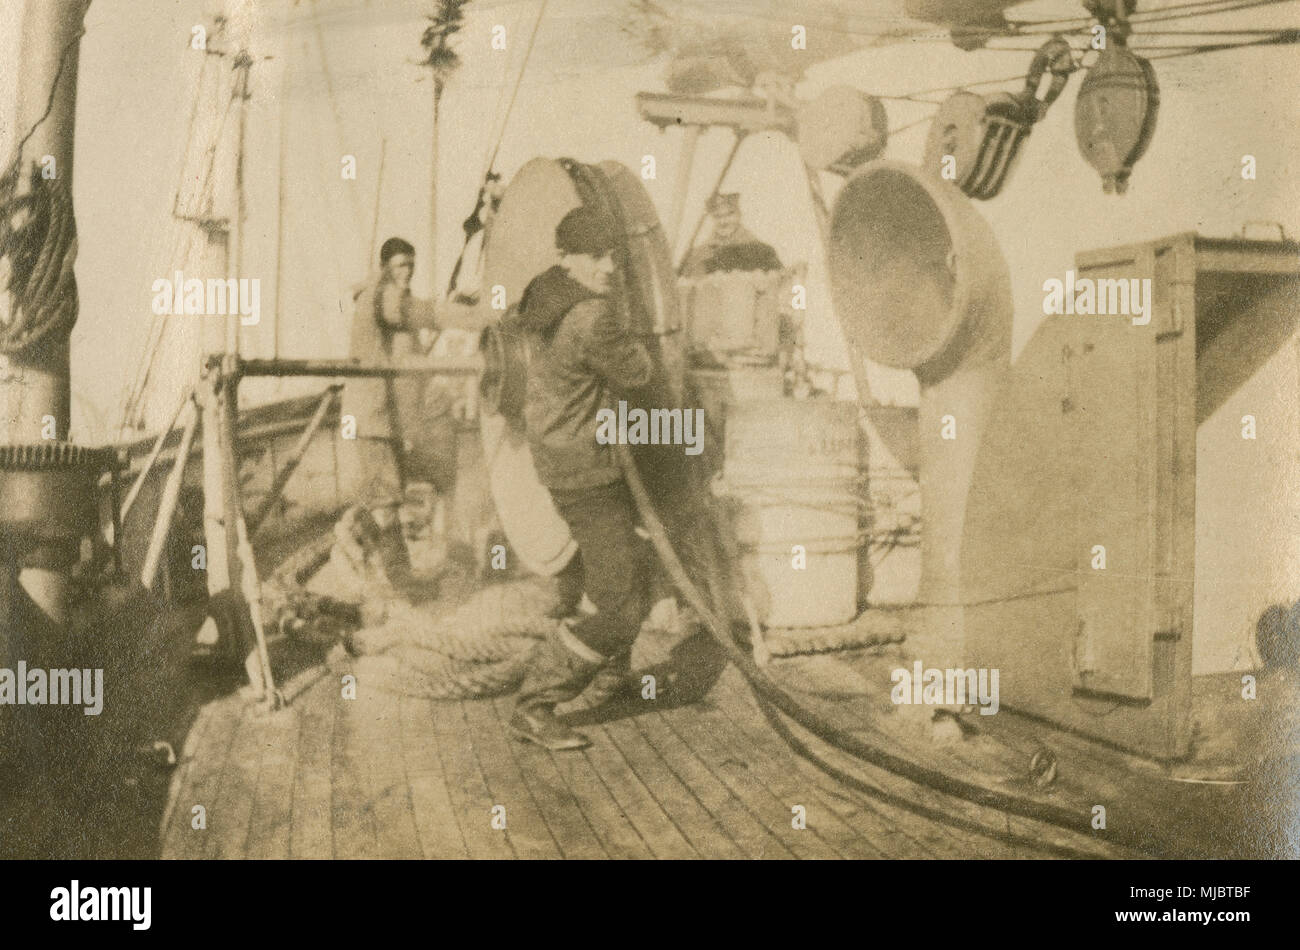 Antique c1922 photograph, view aboard the cable ship USCG Pequot. Forward deck showing cable winch equipment, installed after conversion from an Army mine layer, and companionway stairs to lower crew quarters (at right). SOURCE: ORIGINAL PHOTOGRAPHIC PRINT. - Stock Image